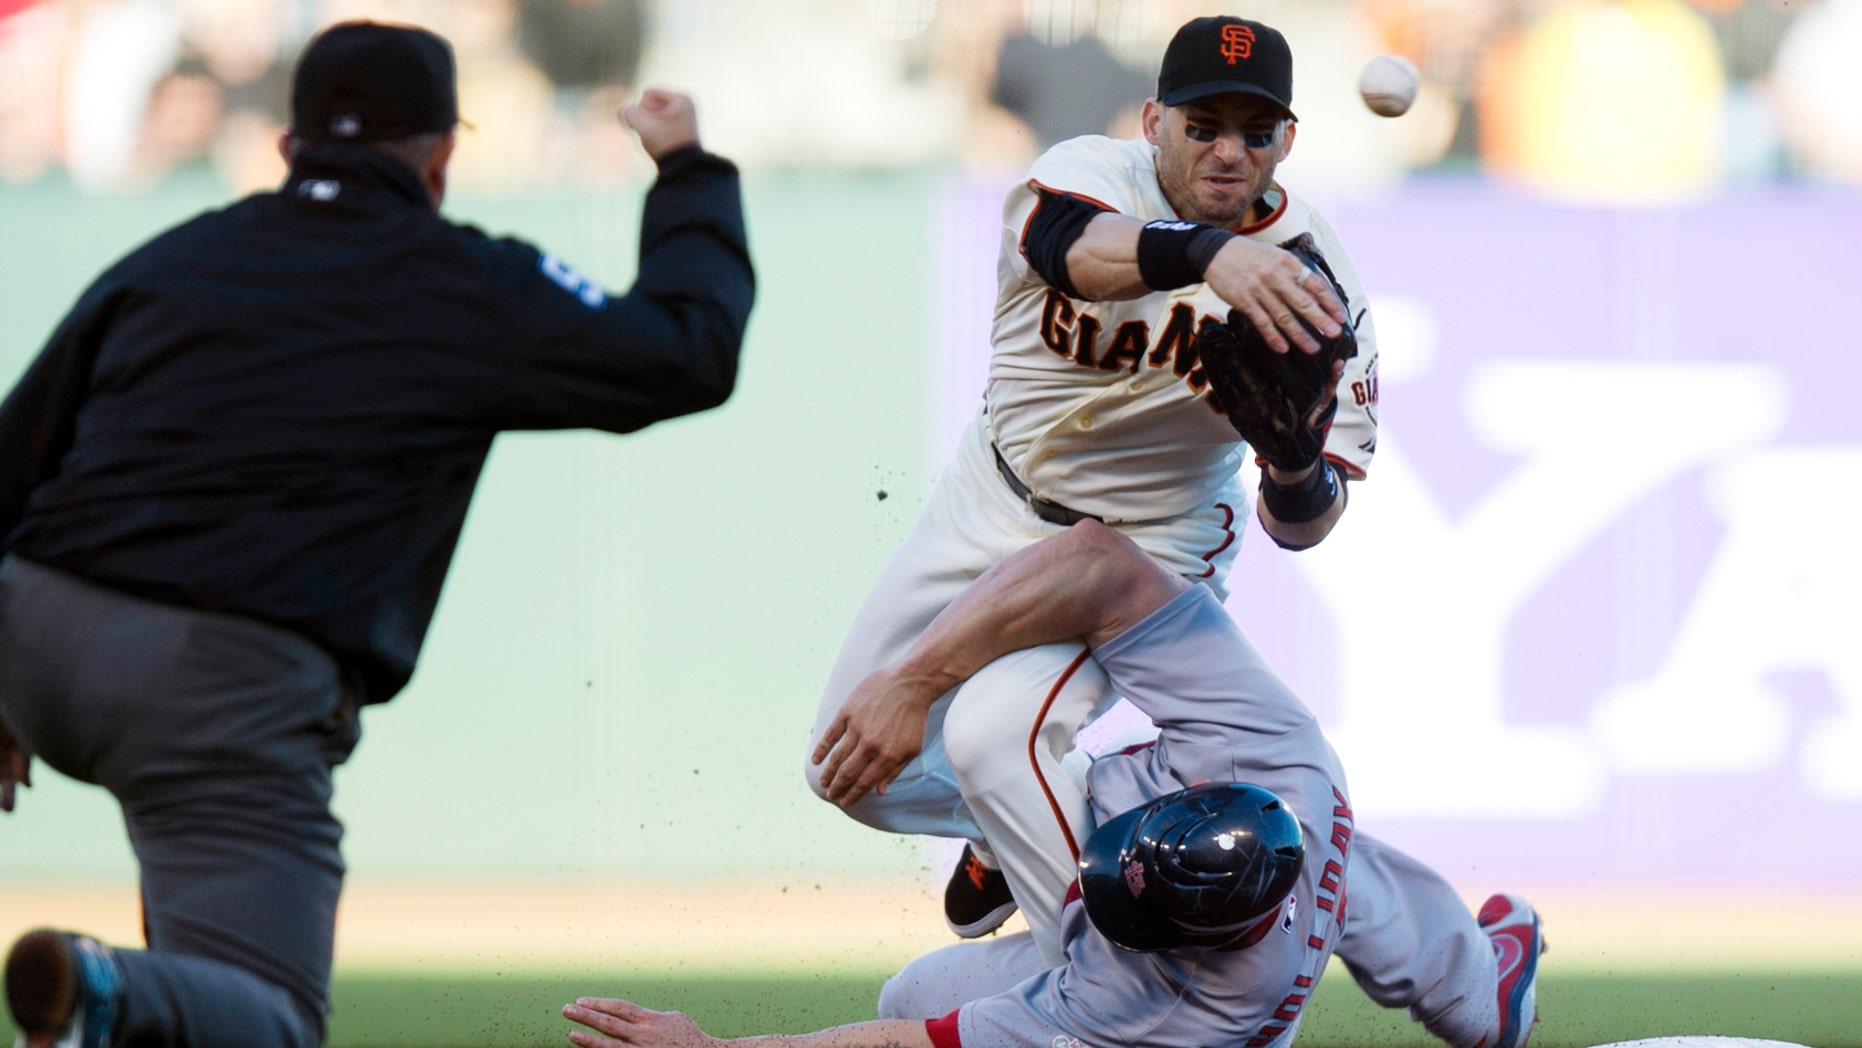 Oct. 15: San Francisco Giants second baseman Marco Scutaro (19) throws to first as he is taken out by St. Louis Cardinals' Matt Holliday (7) during Game 2 of NLCS.